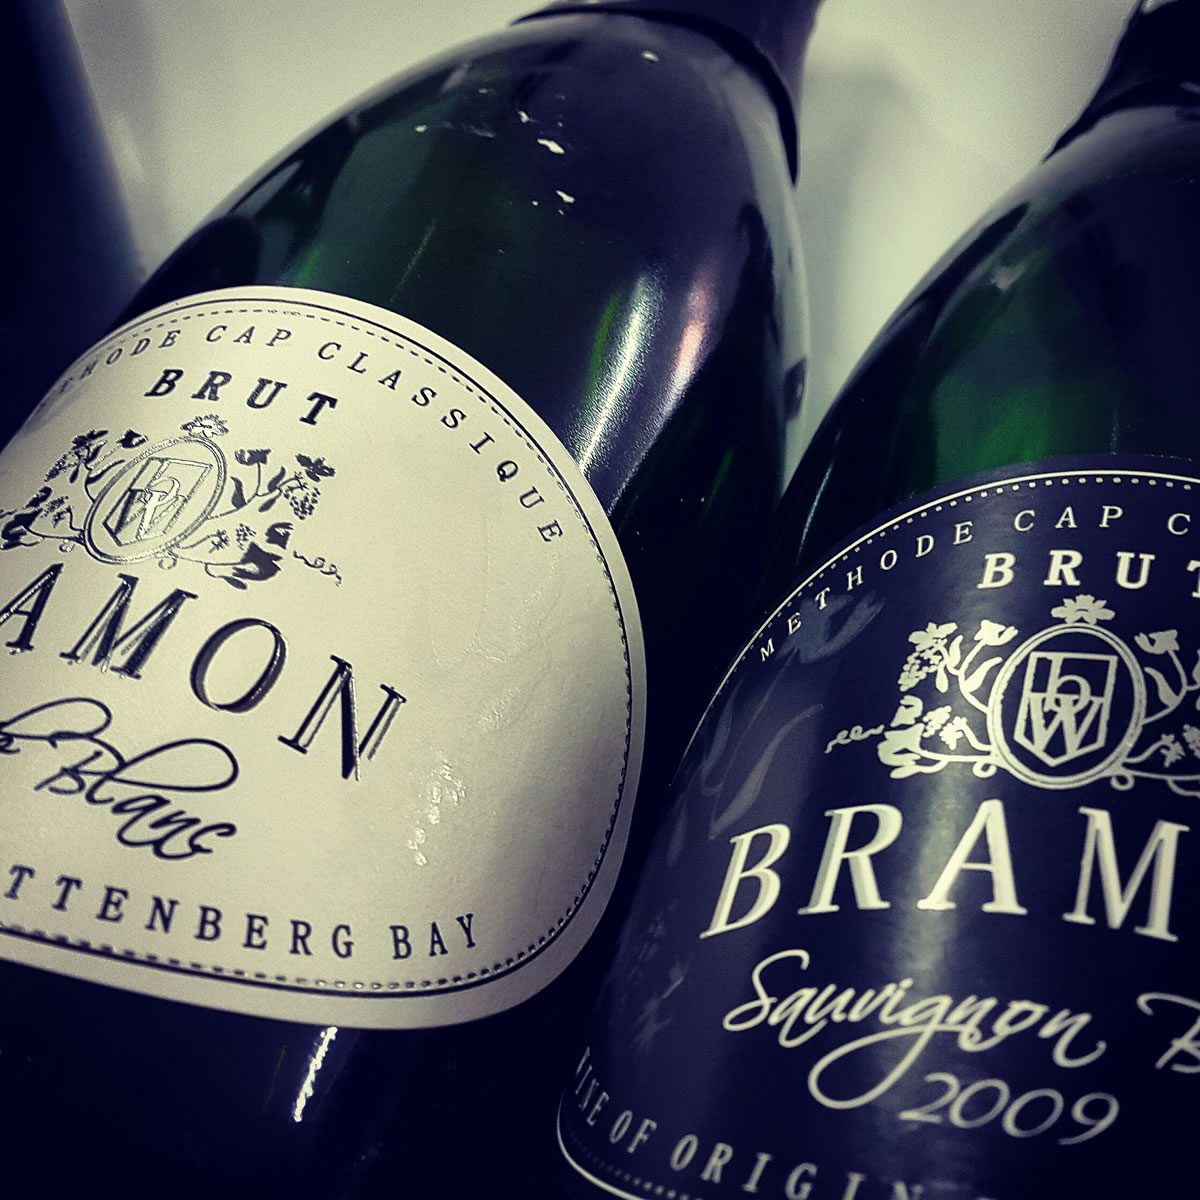 bramon-gallery-bdeb and Sauv MCC labels